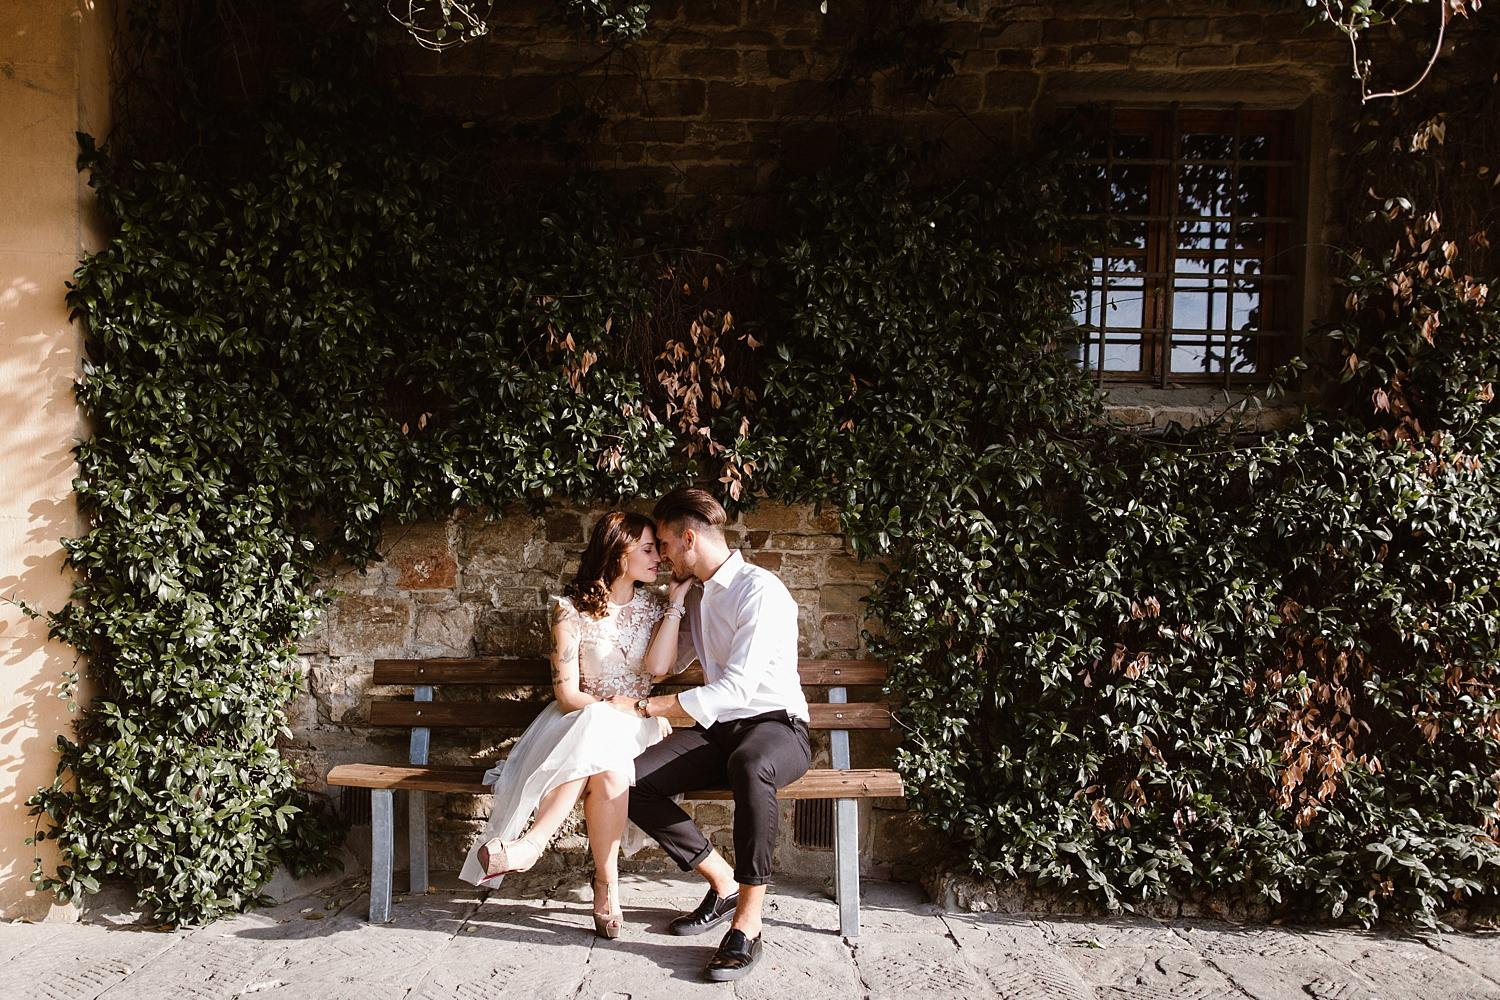 weddingphotographer florence 28 - Maddalena & Arturo - A Chic Anniversary Session in Florence